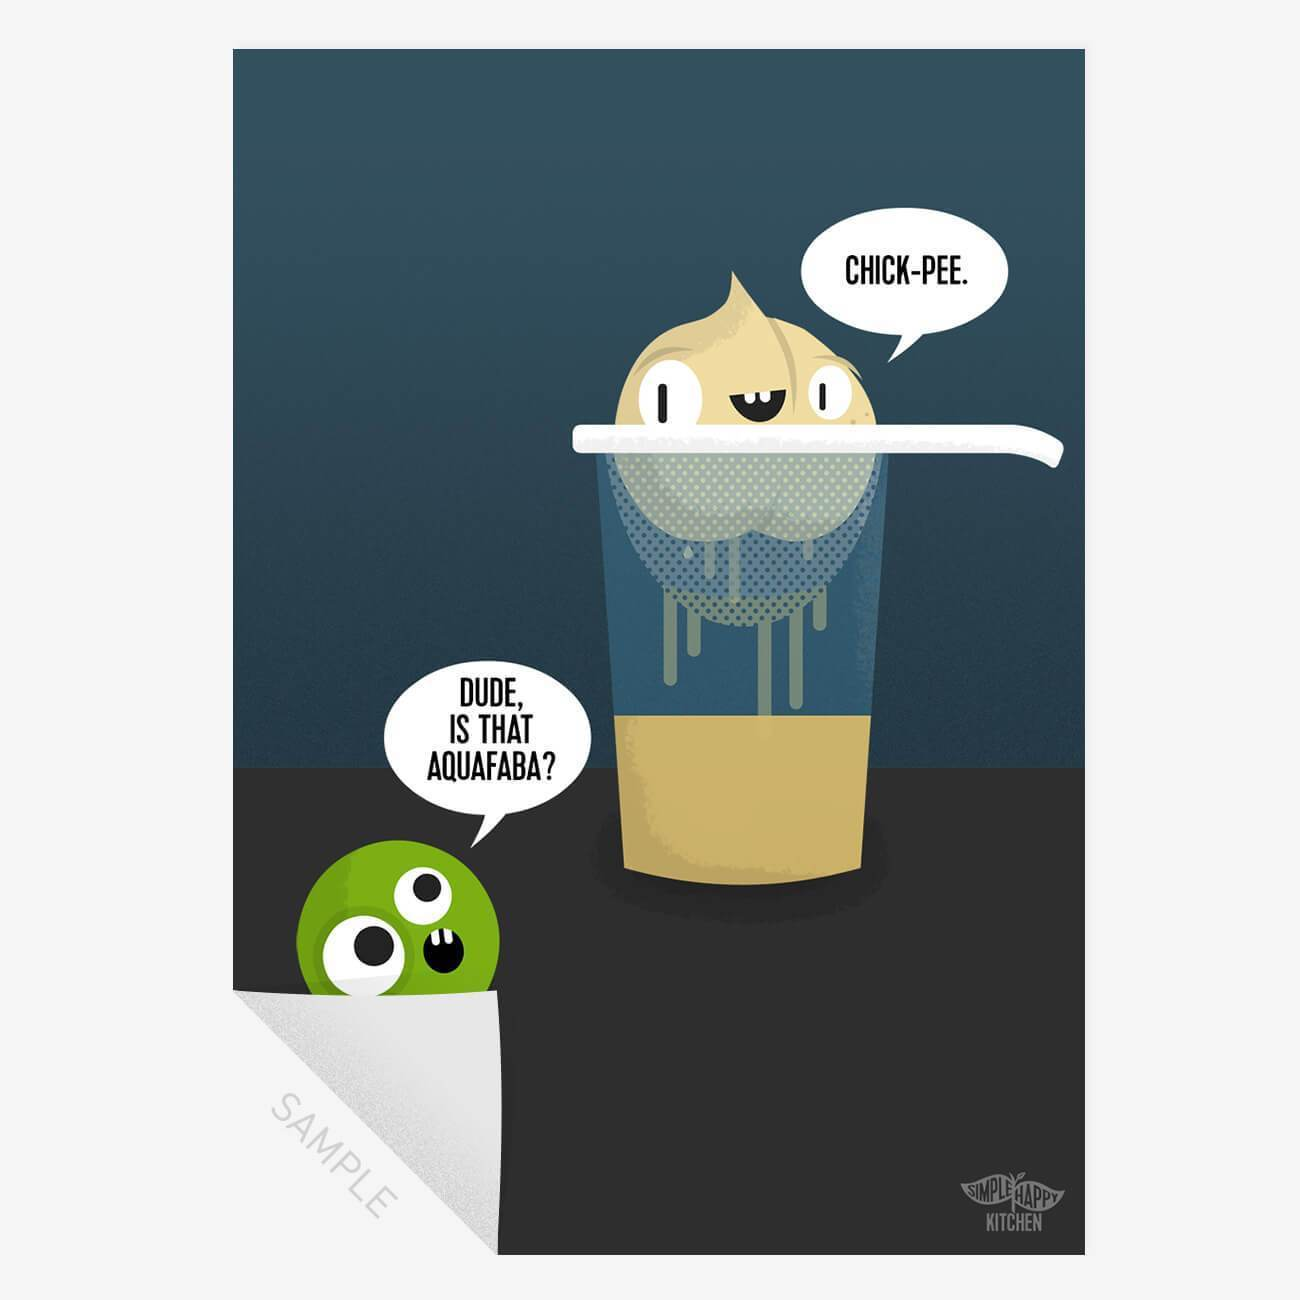 Prints - Vegan Aquafaba Chick-pee - Print